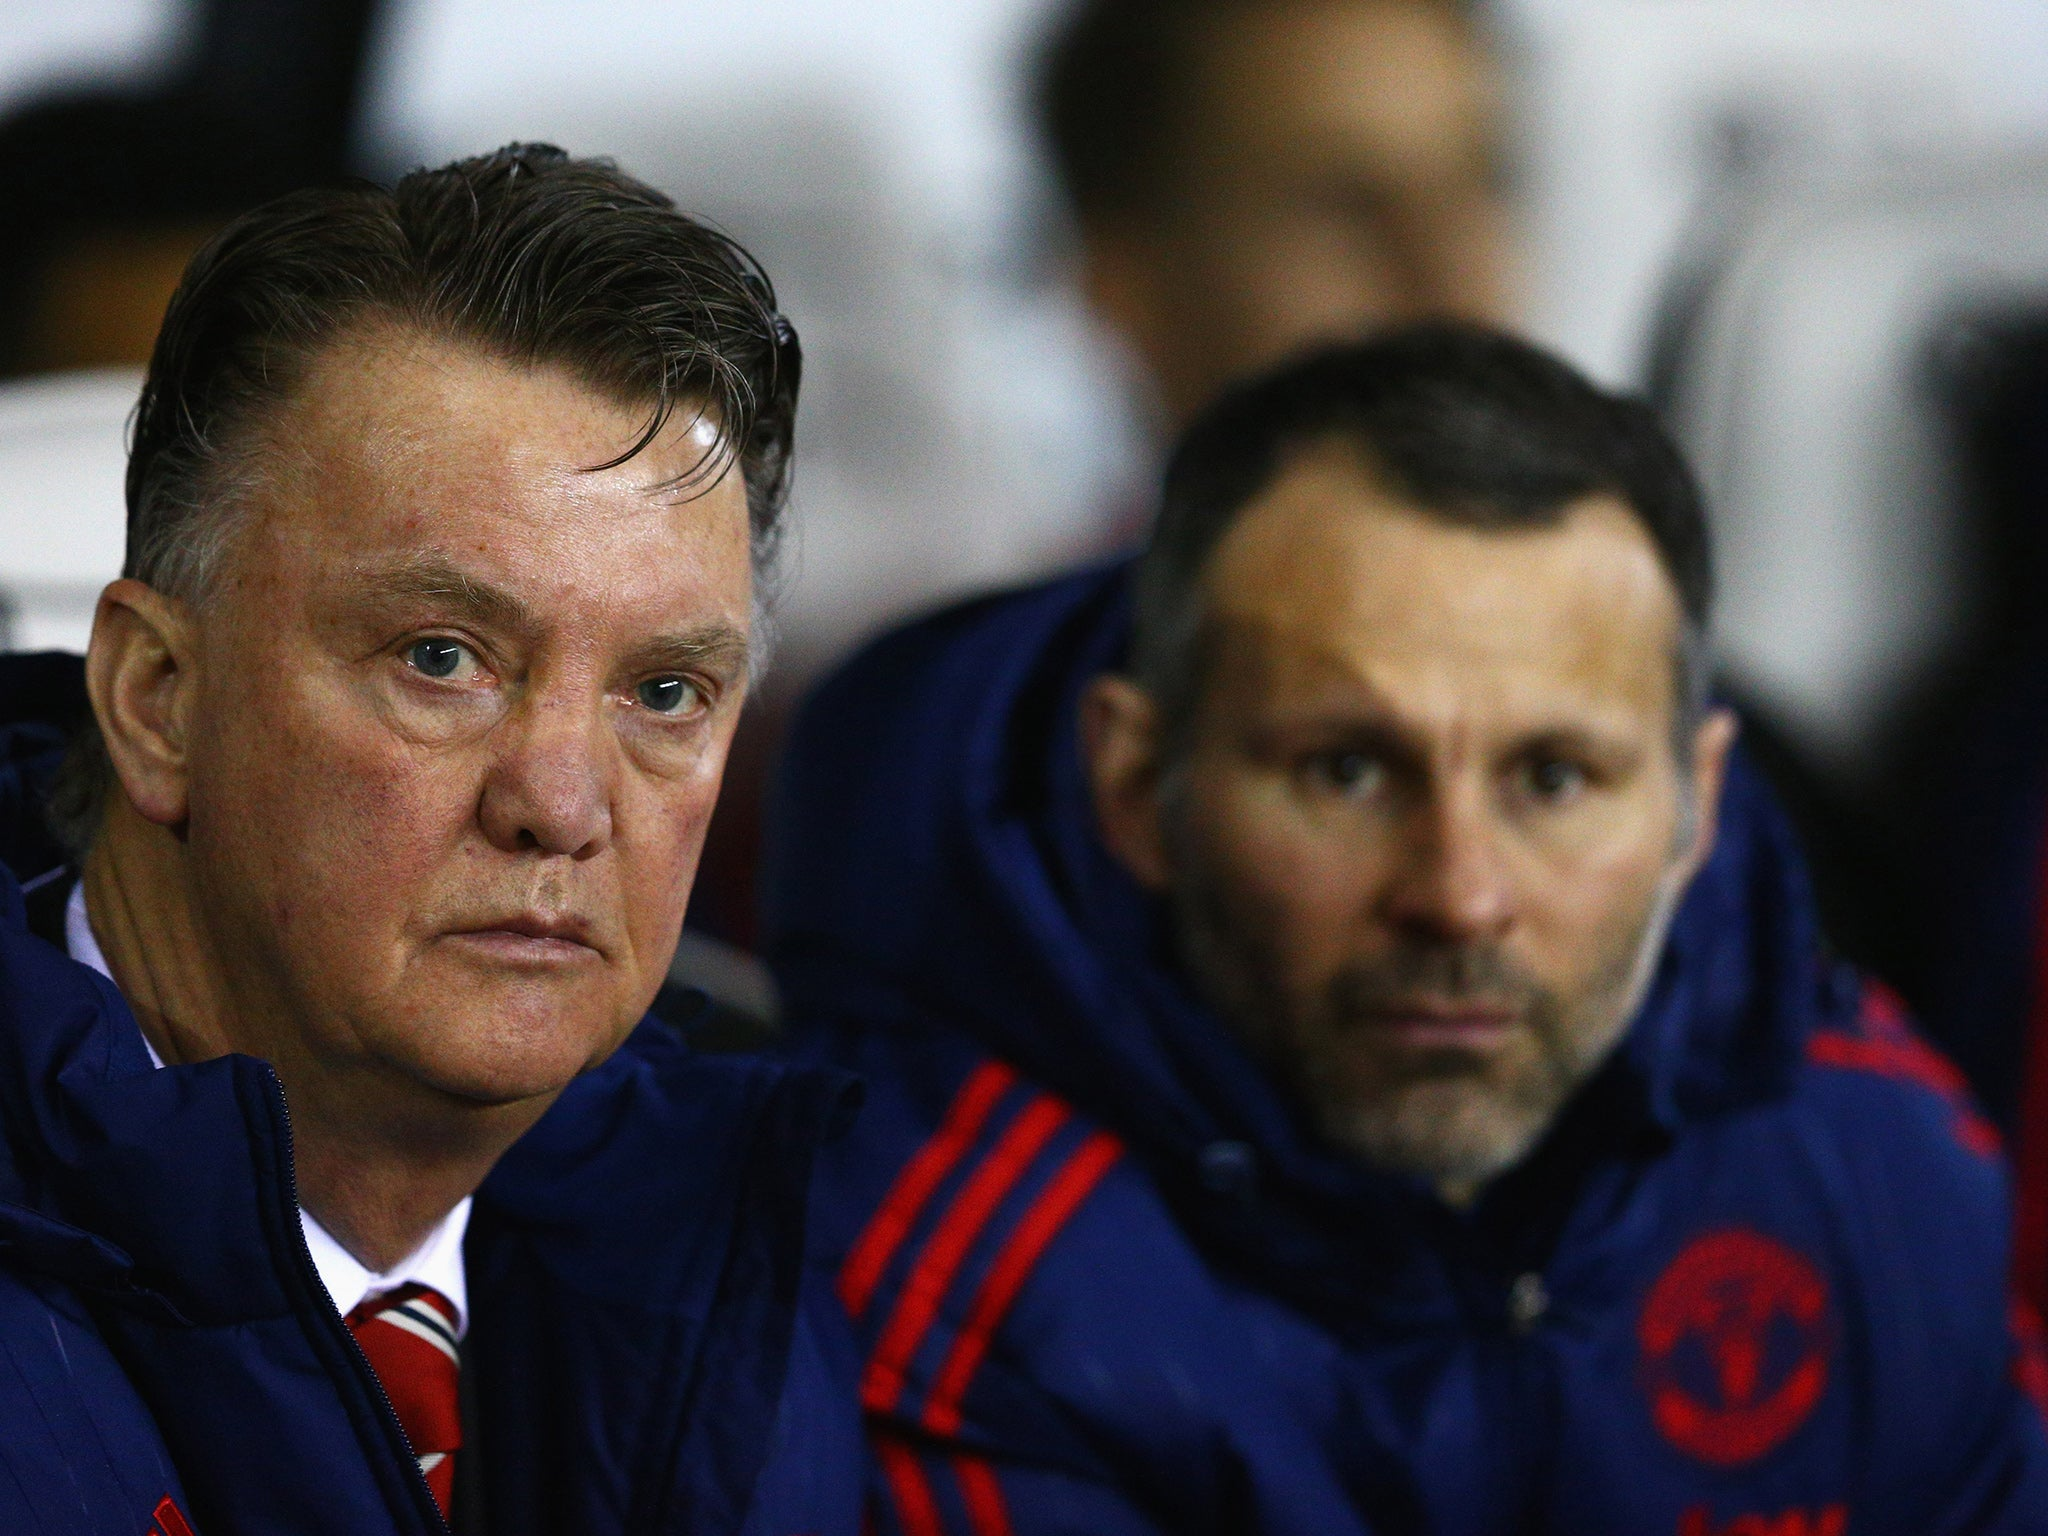 Derby County 1 Manchester United 3: Louis Van Gaal To